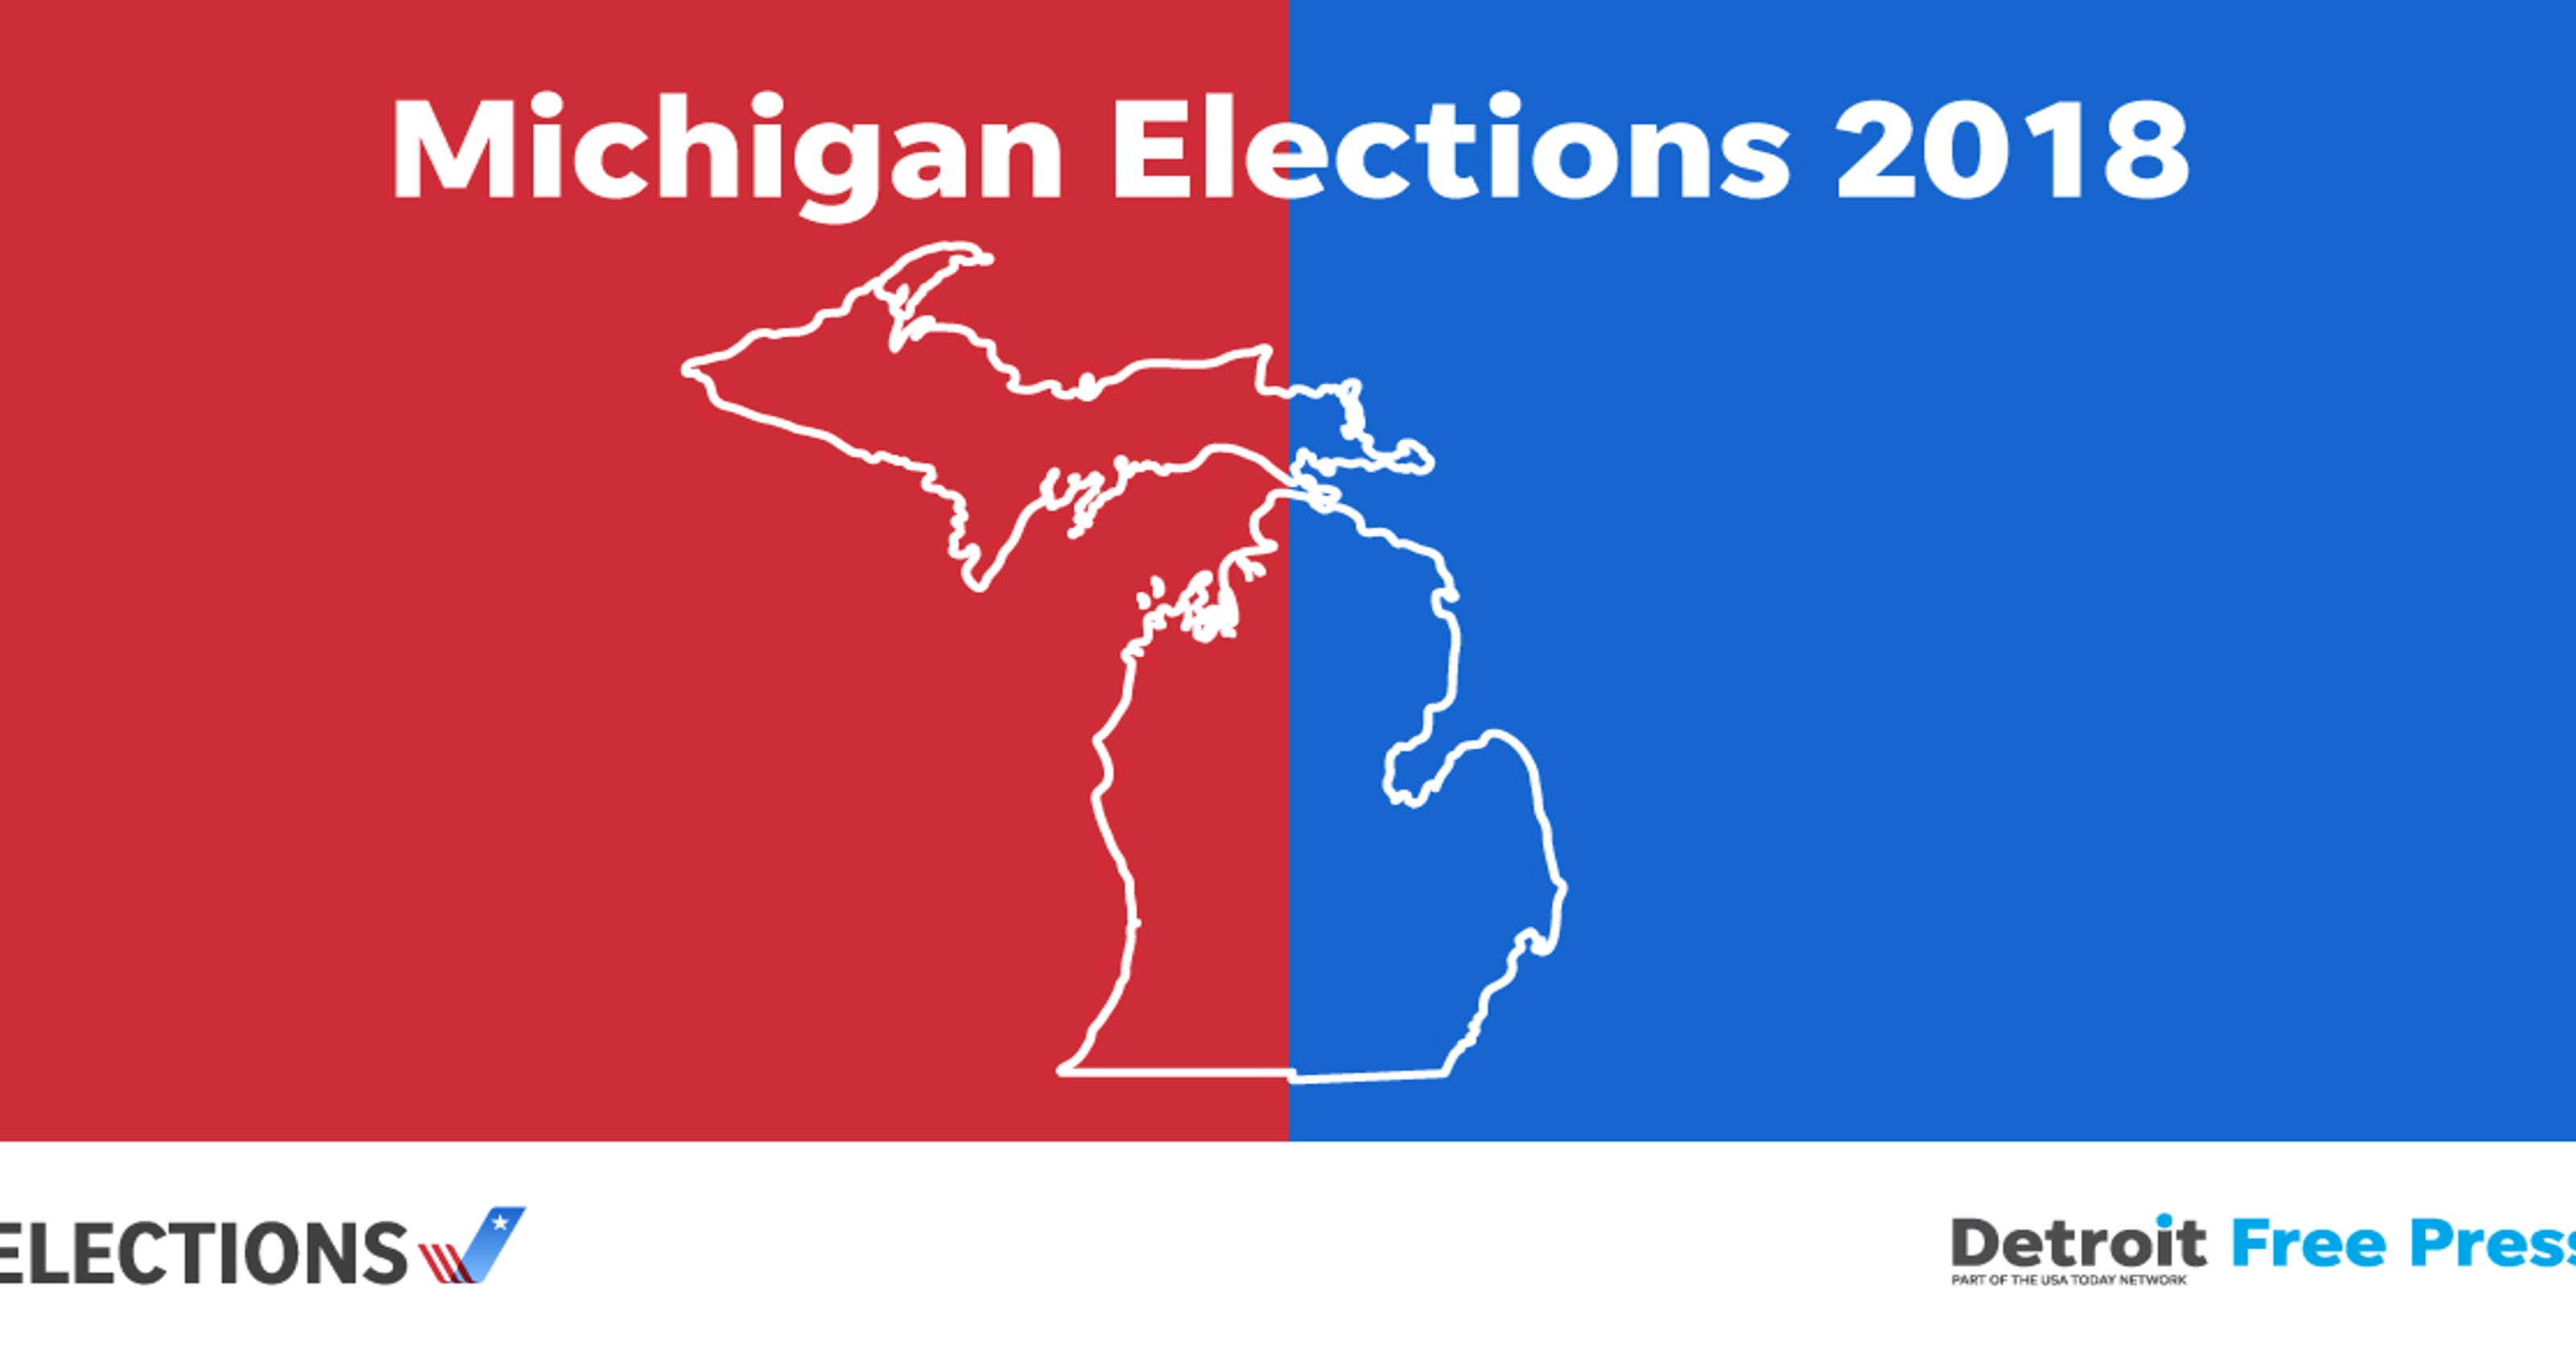 Michigan election results for Oakland, Wayne and Macomb counties